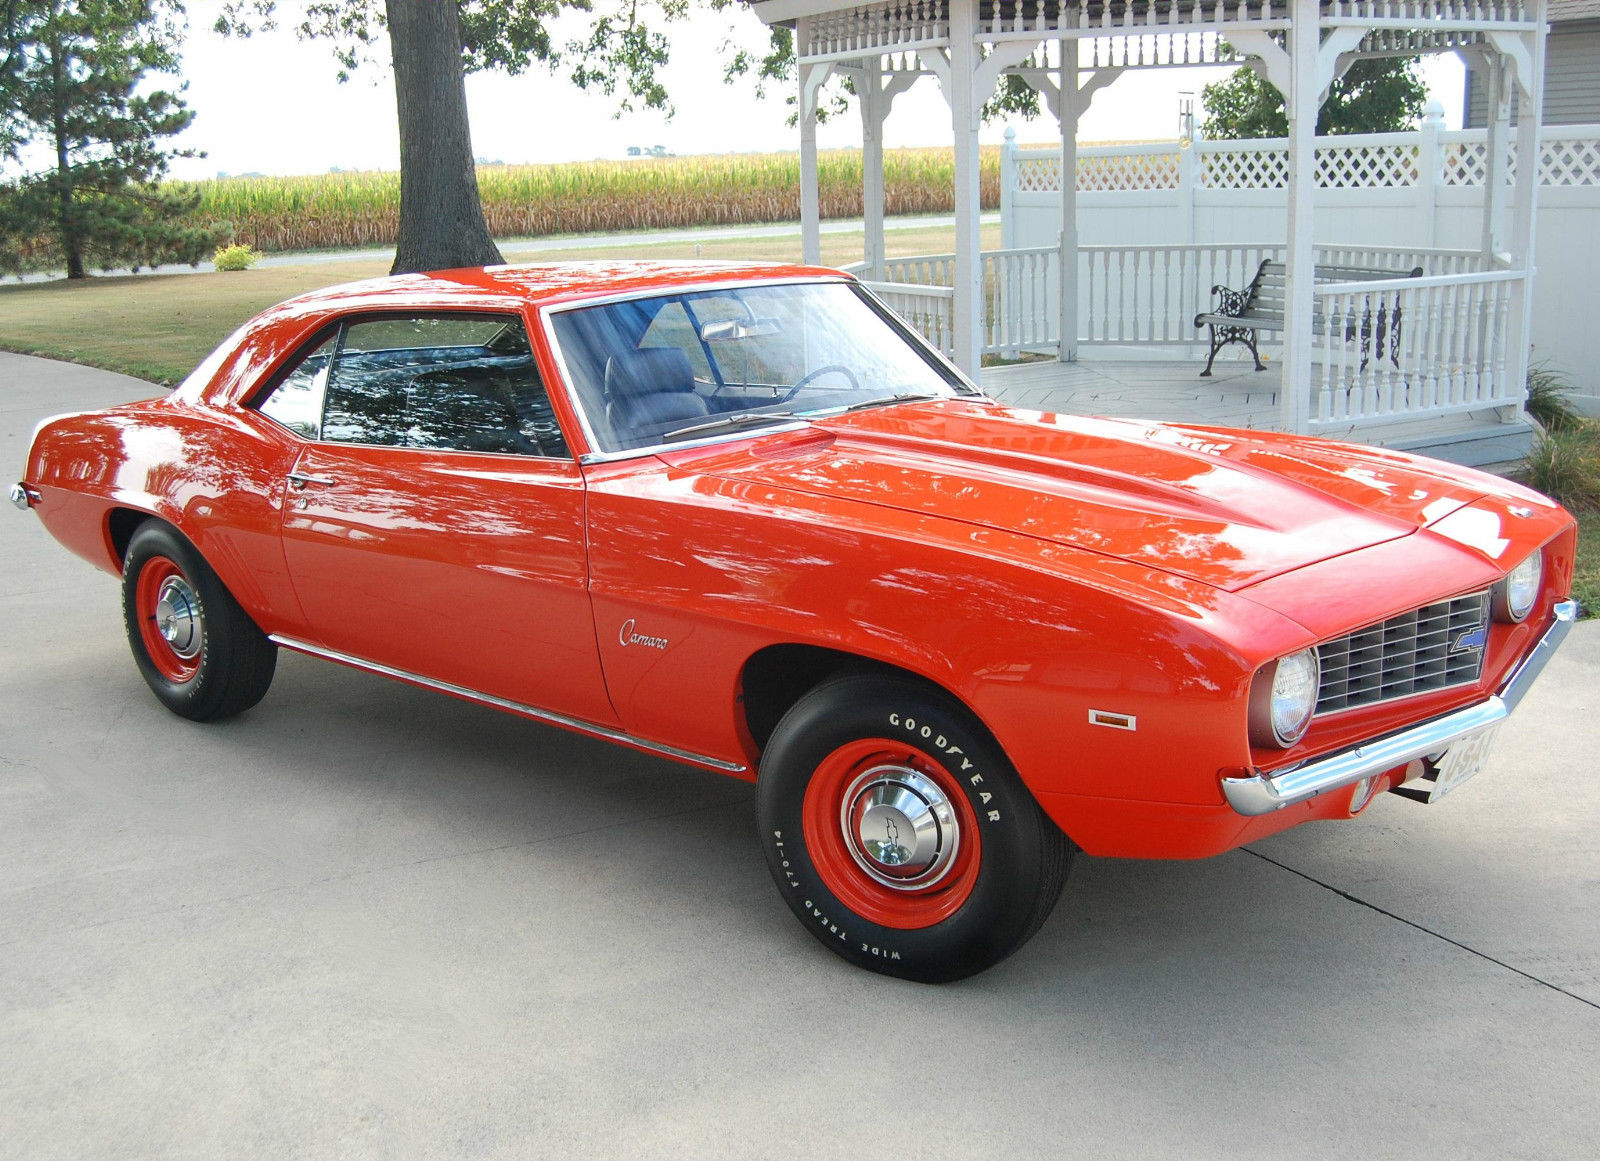 1969 camaro copo zl1 for sale in atwood illinois united states. Black Bedroom Furniture Sets. Home Design Ideas